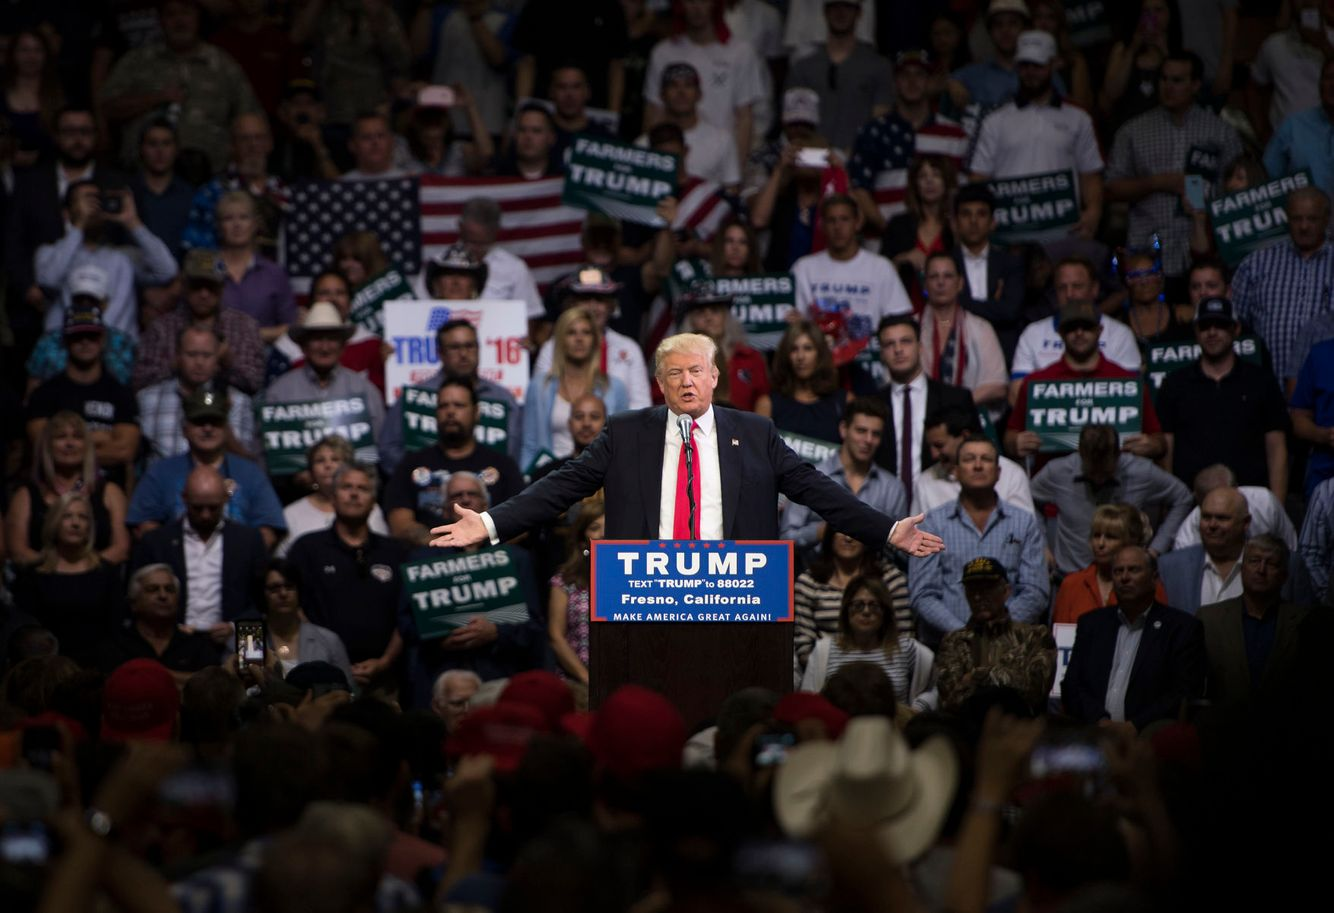 Donald Trump speaks during a campaign event.